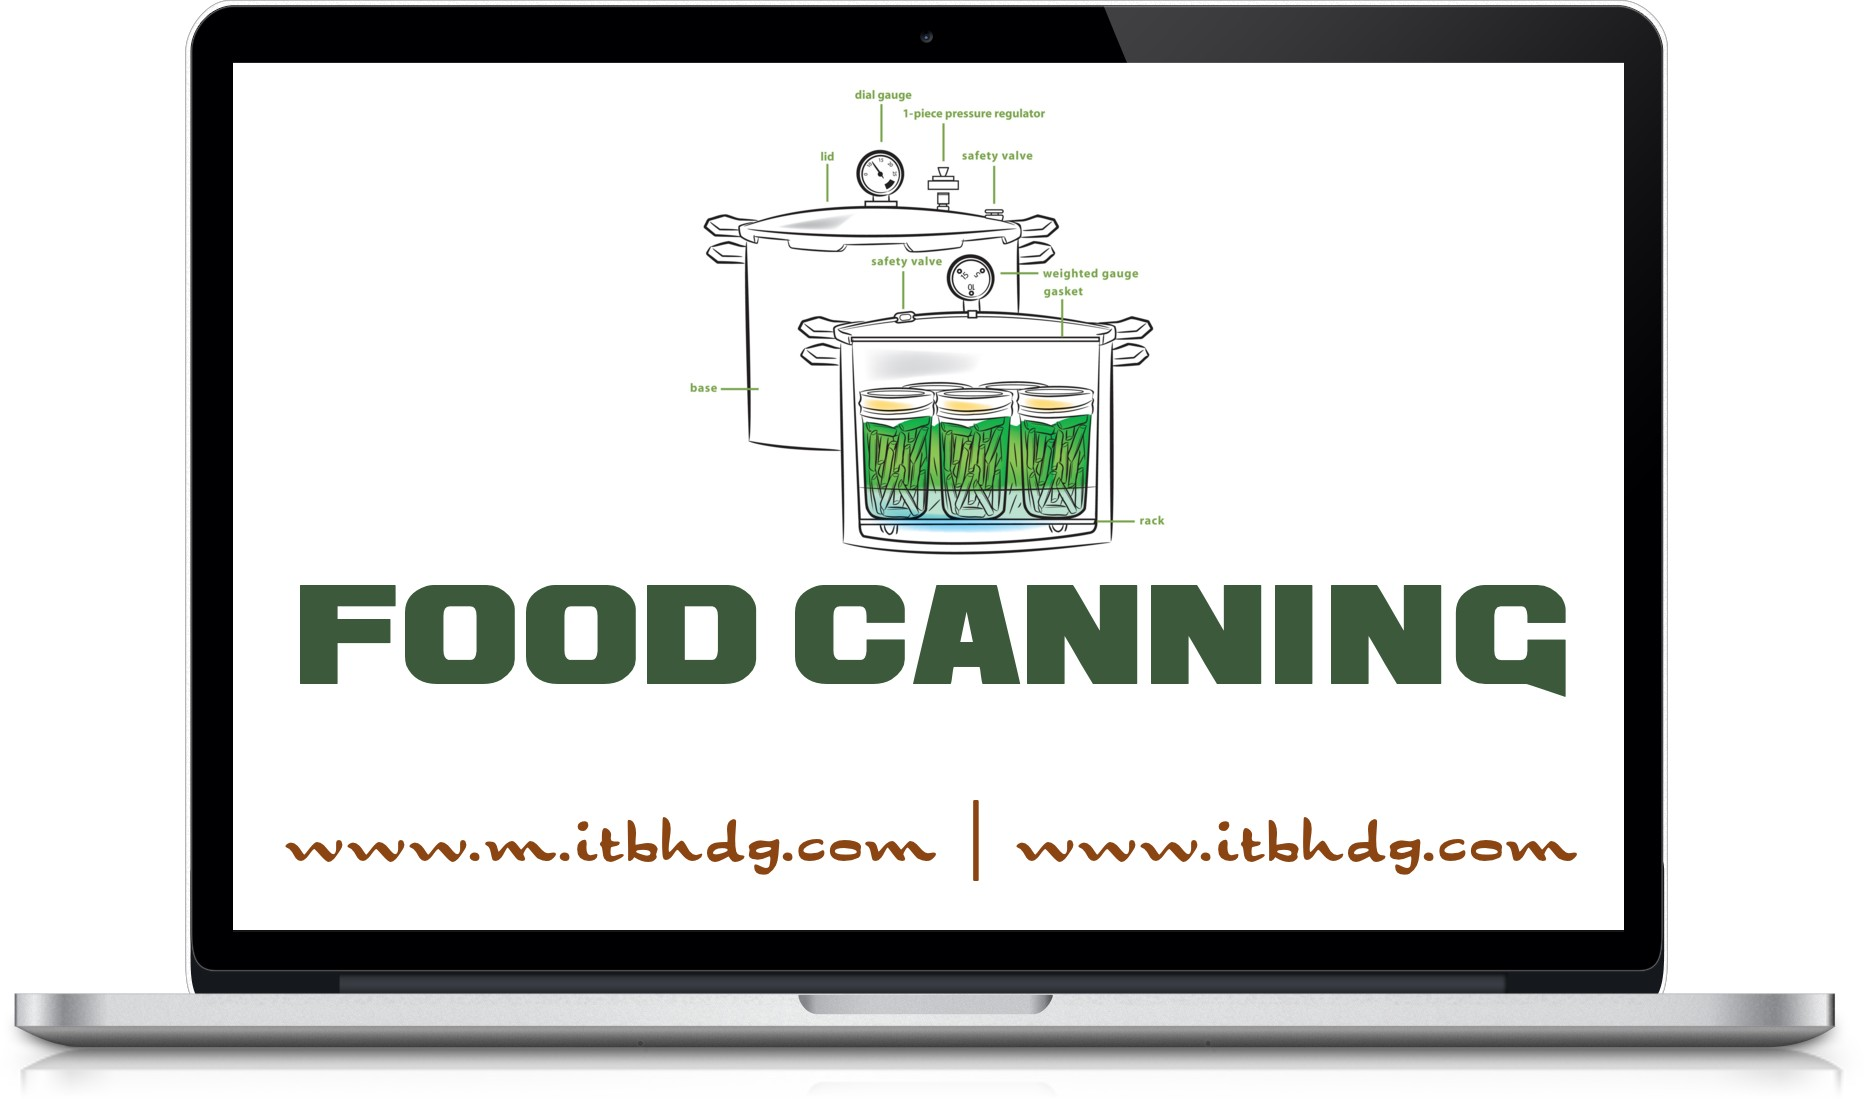 FDA Registration of your Food Canning Company | www.m.itbhdg.com | www.itbhdg.com